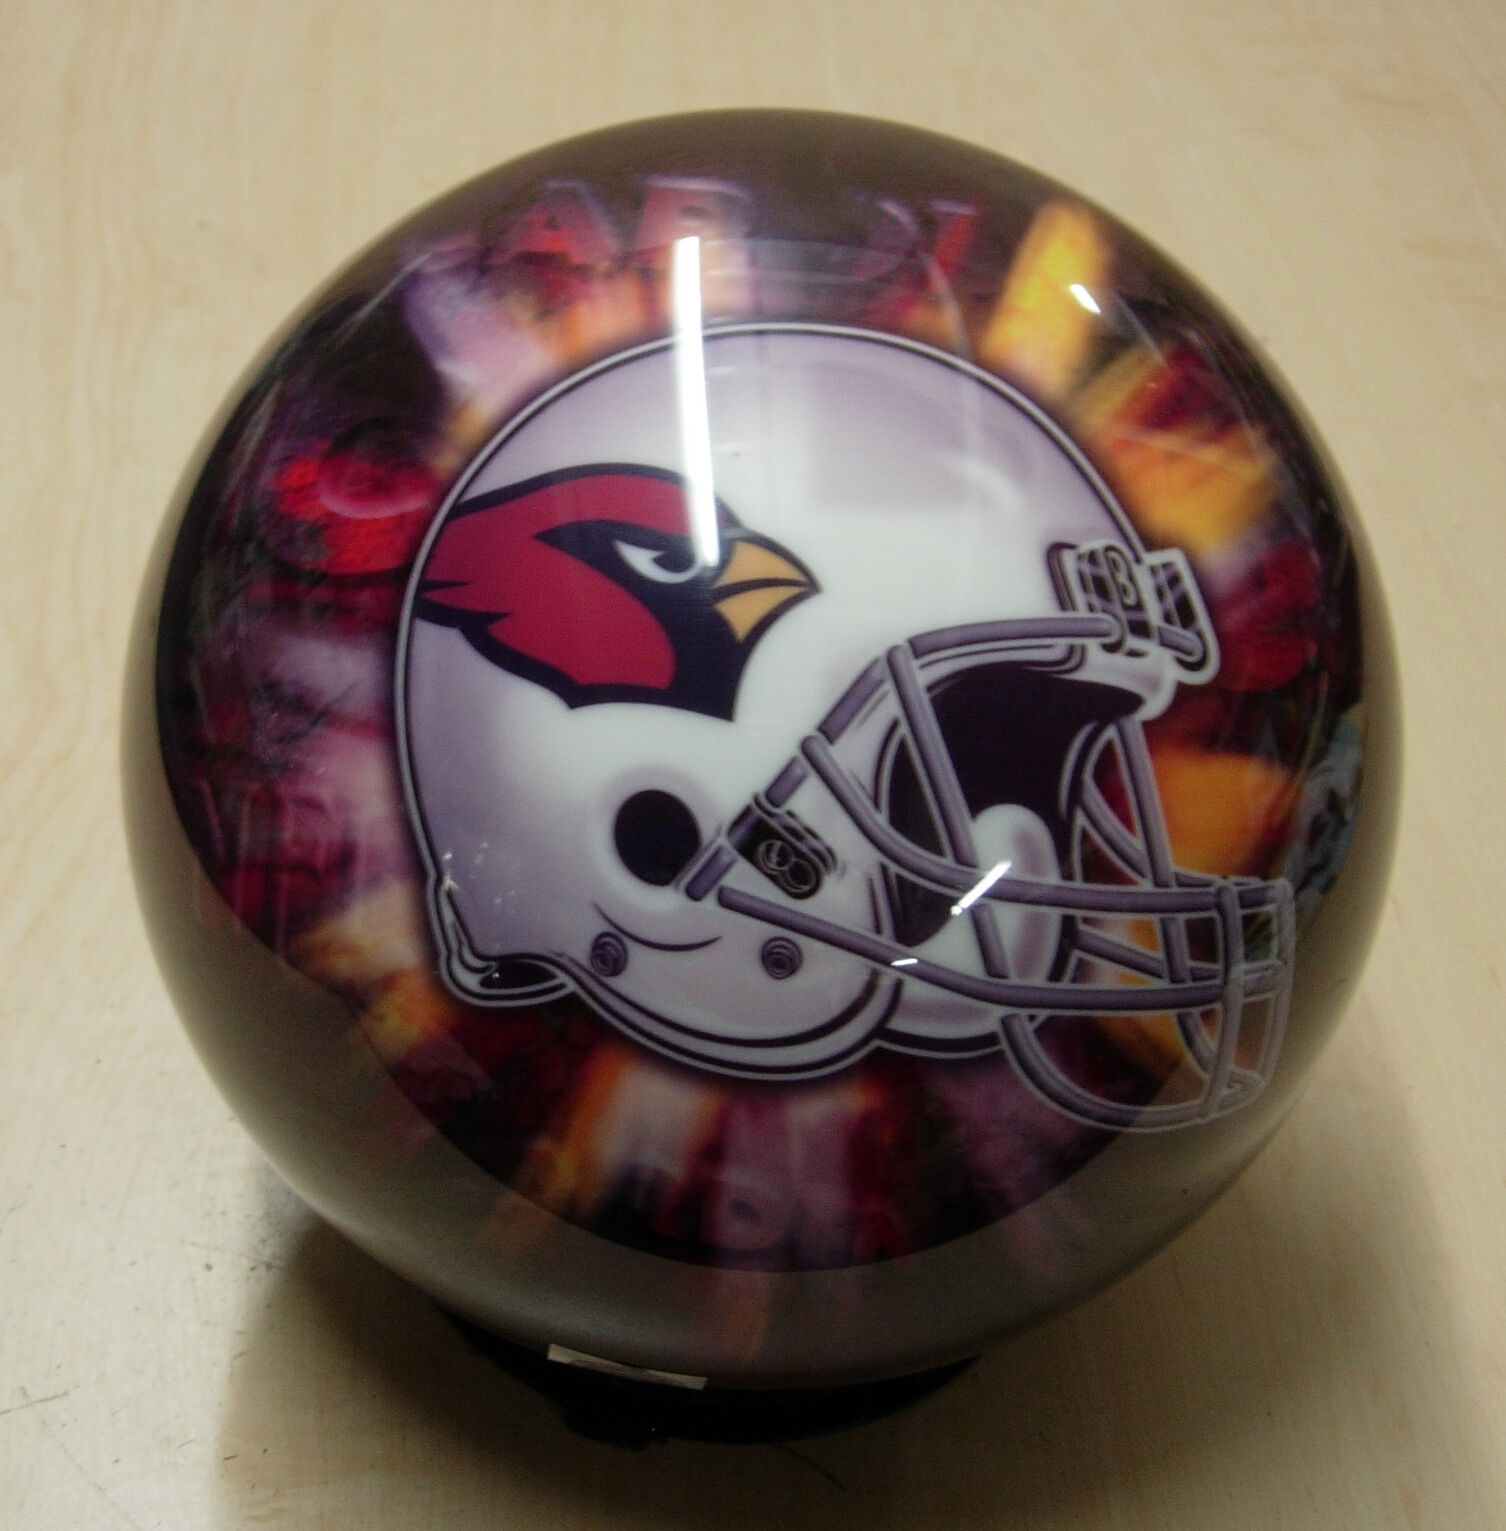 8RARE 2006 Helmet OnTheBall VIZ-A-BALL NFL ARIZONA CARDINALS Bowling Ball